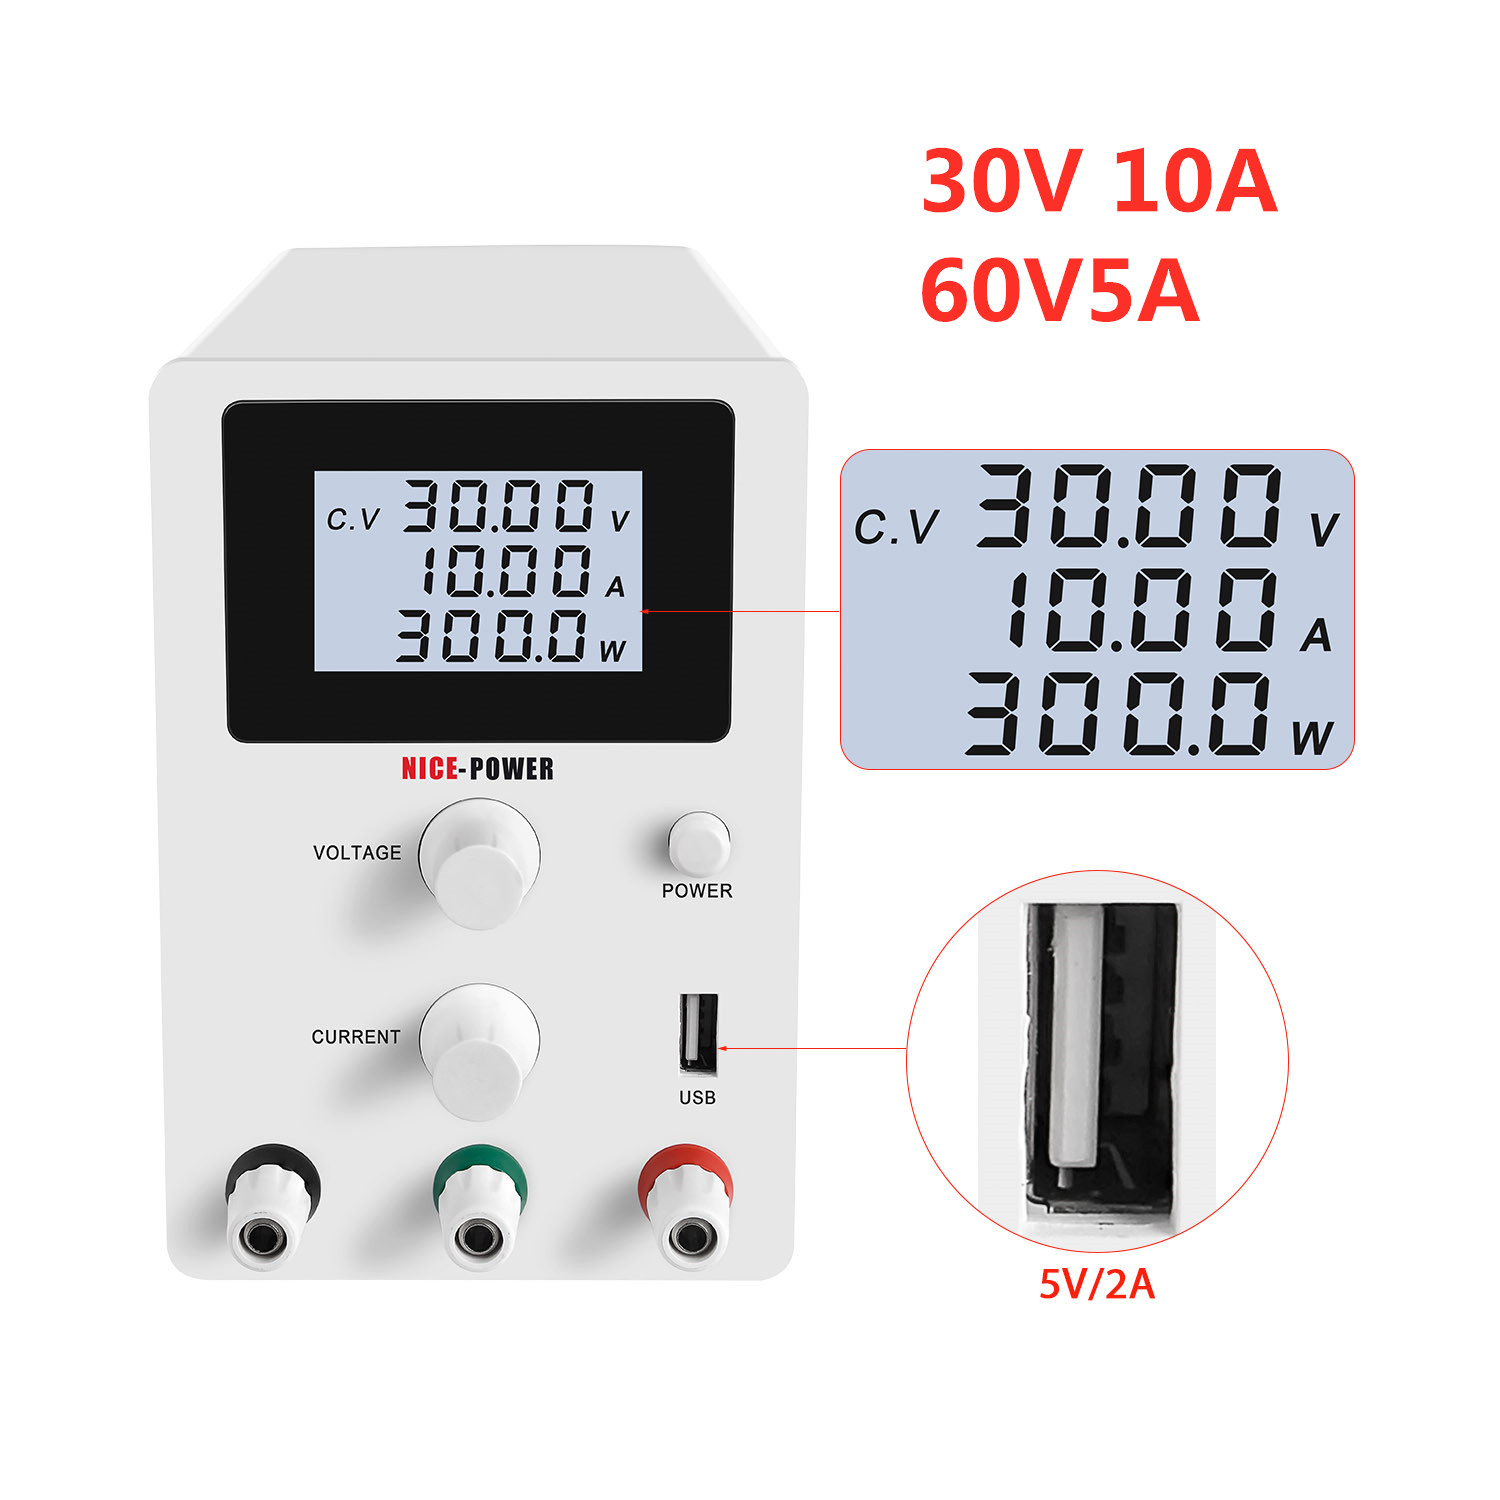 30V 10A Adjustable Digital Display DC Power Supply Switching Power Source High Q